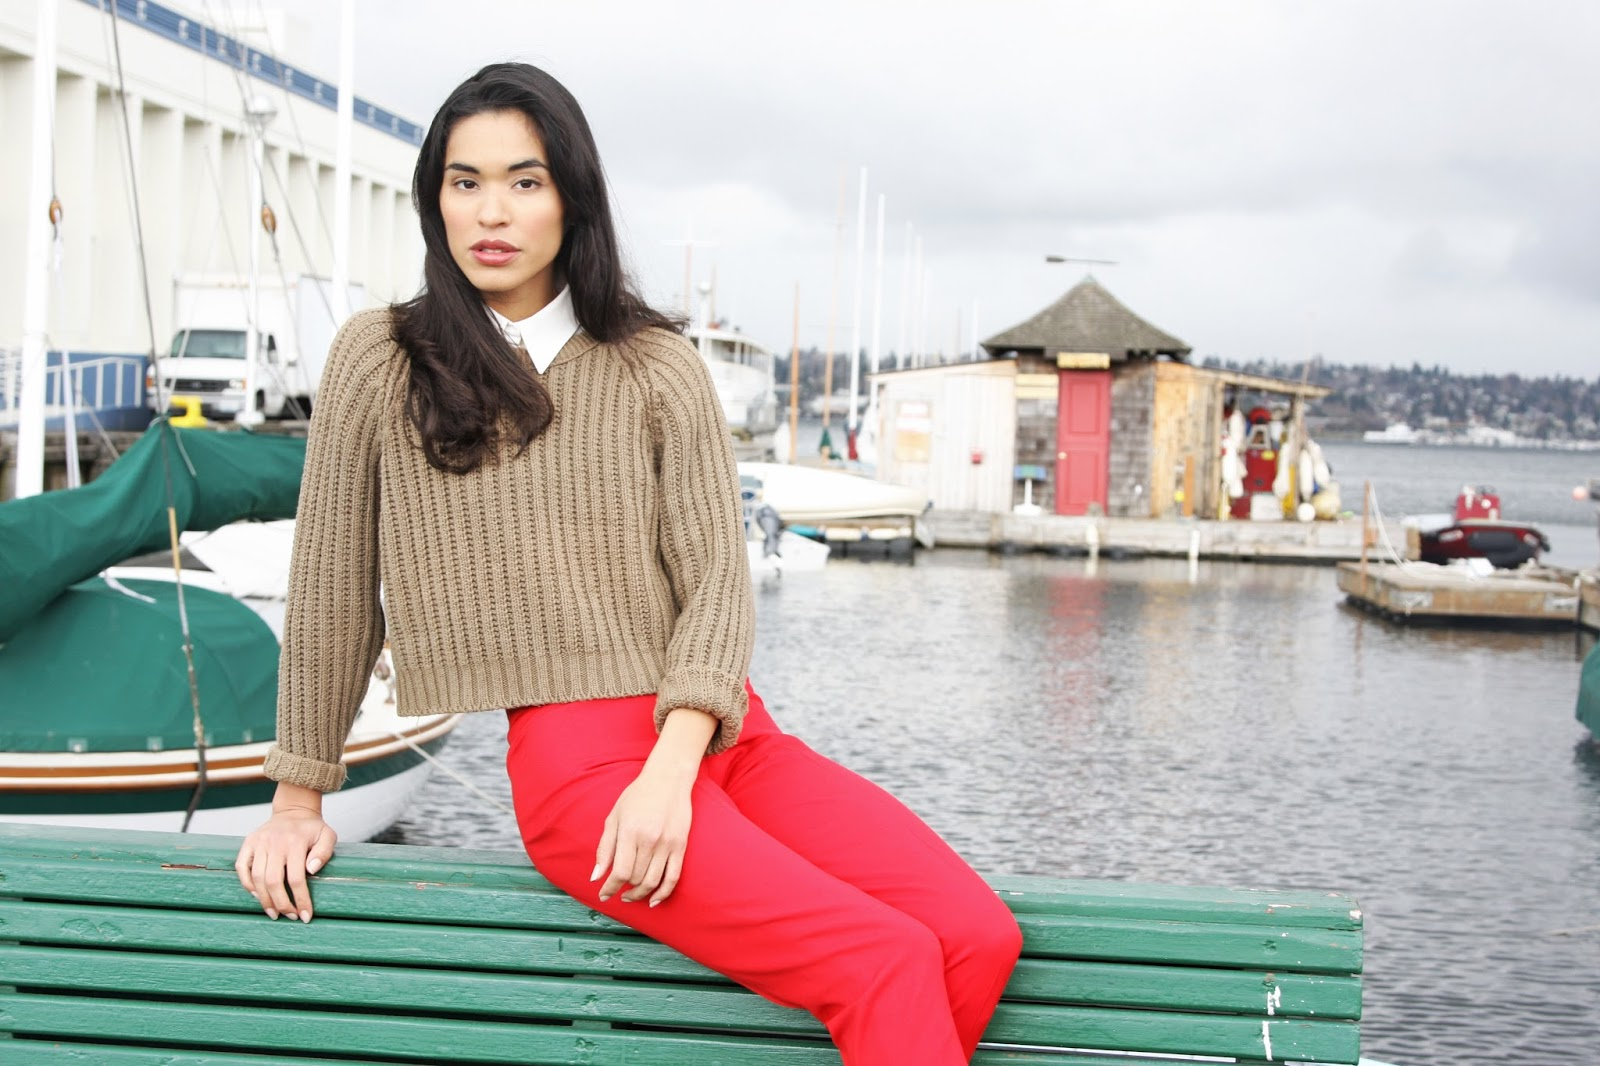 red, trousers, fall fashion, street style, cropped sweater, seattle, model, ashley chanel, outfit ideas